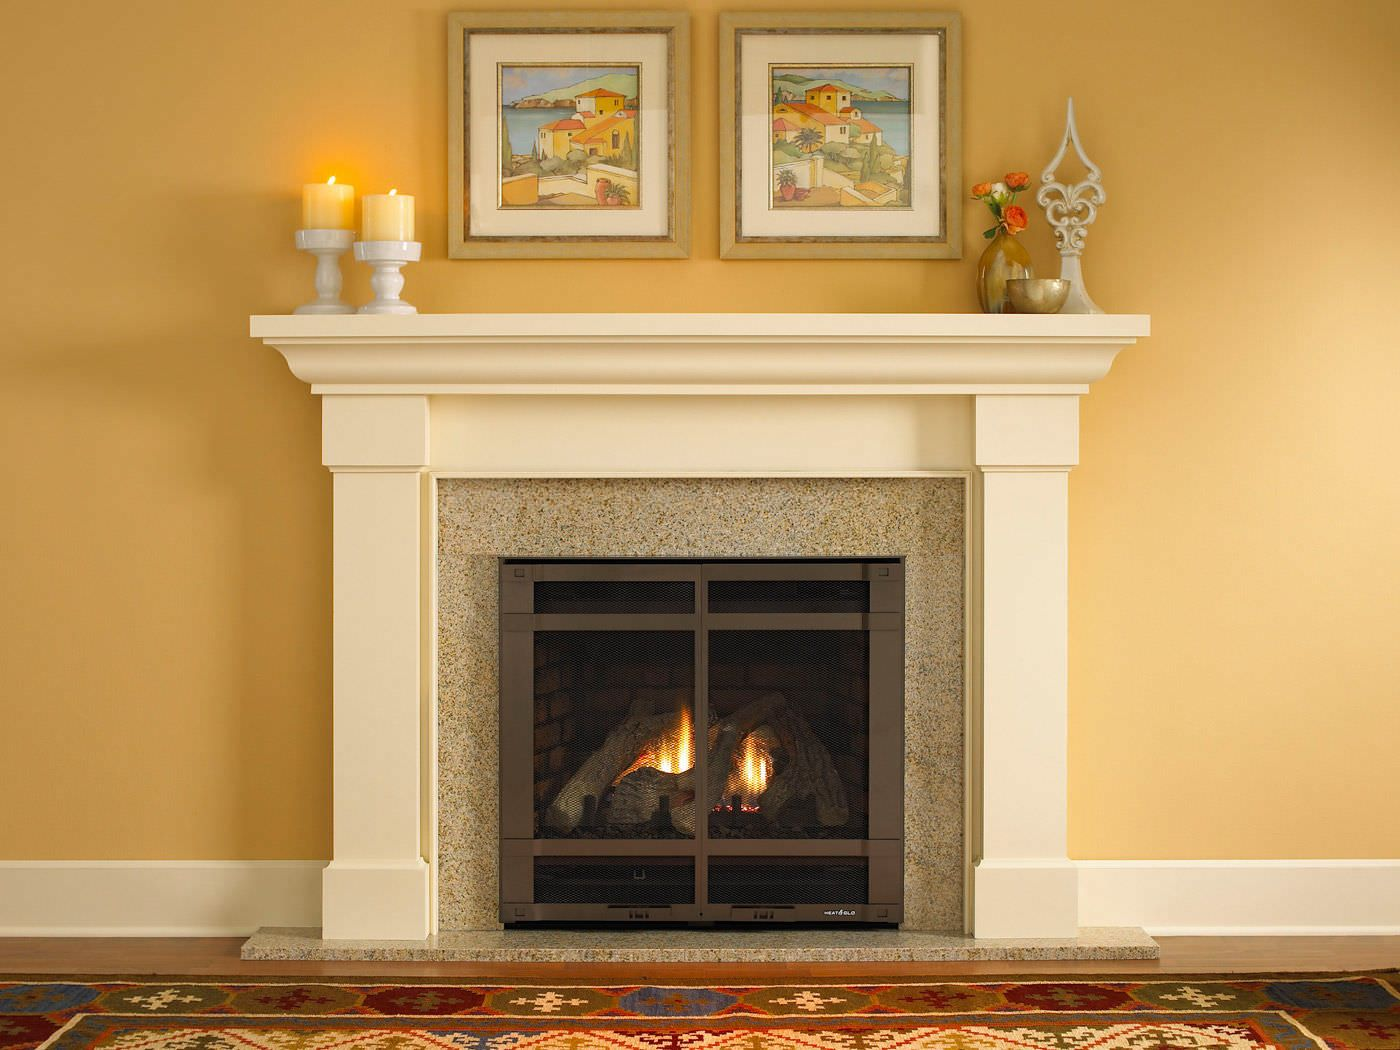 4 reasons to choose traditional fireplaces for the home